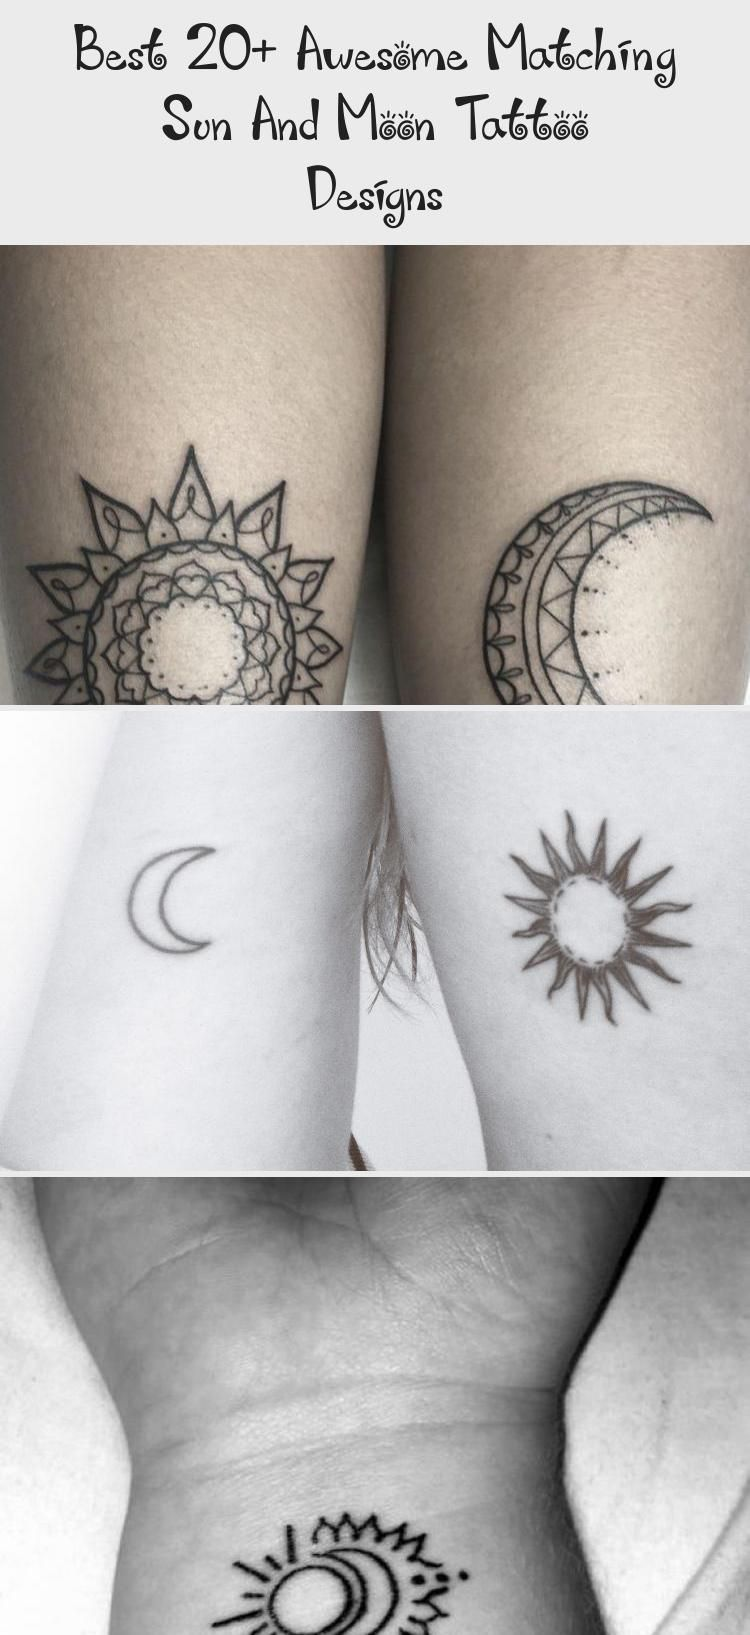 Best 20 Awesome Matching Sun And Moon Tattoo Designs Tattoos Matching Sun And Moon Tattoo Design In 2020 Moon Tattoo Designs Moon Tattoo Tattoo Designs